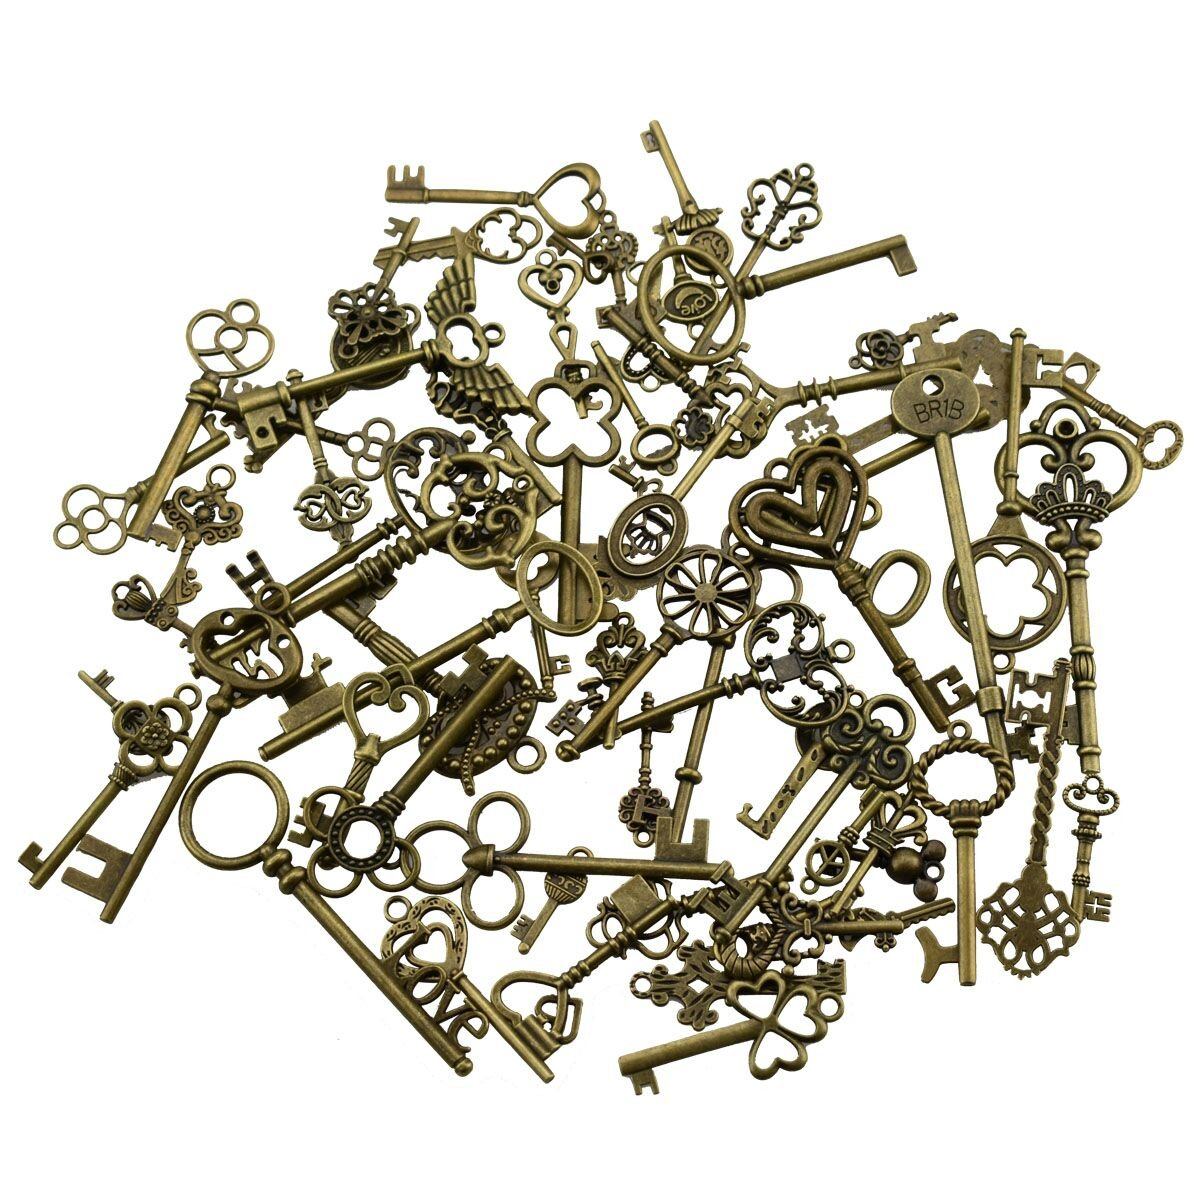 36Pcs Extra Large Antique Bronze Finish Skeleton Keys Rustic Key for Wedding Decoration Favor, Necklace Pendants, Jewelry Making Y2